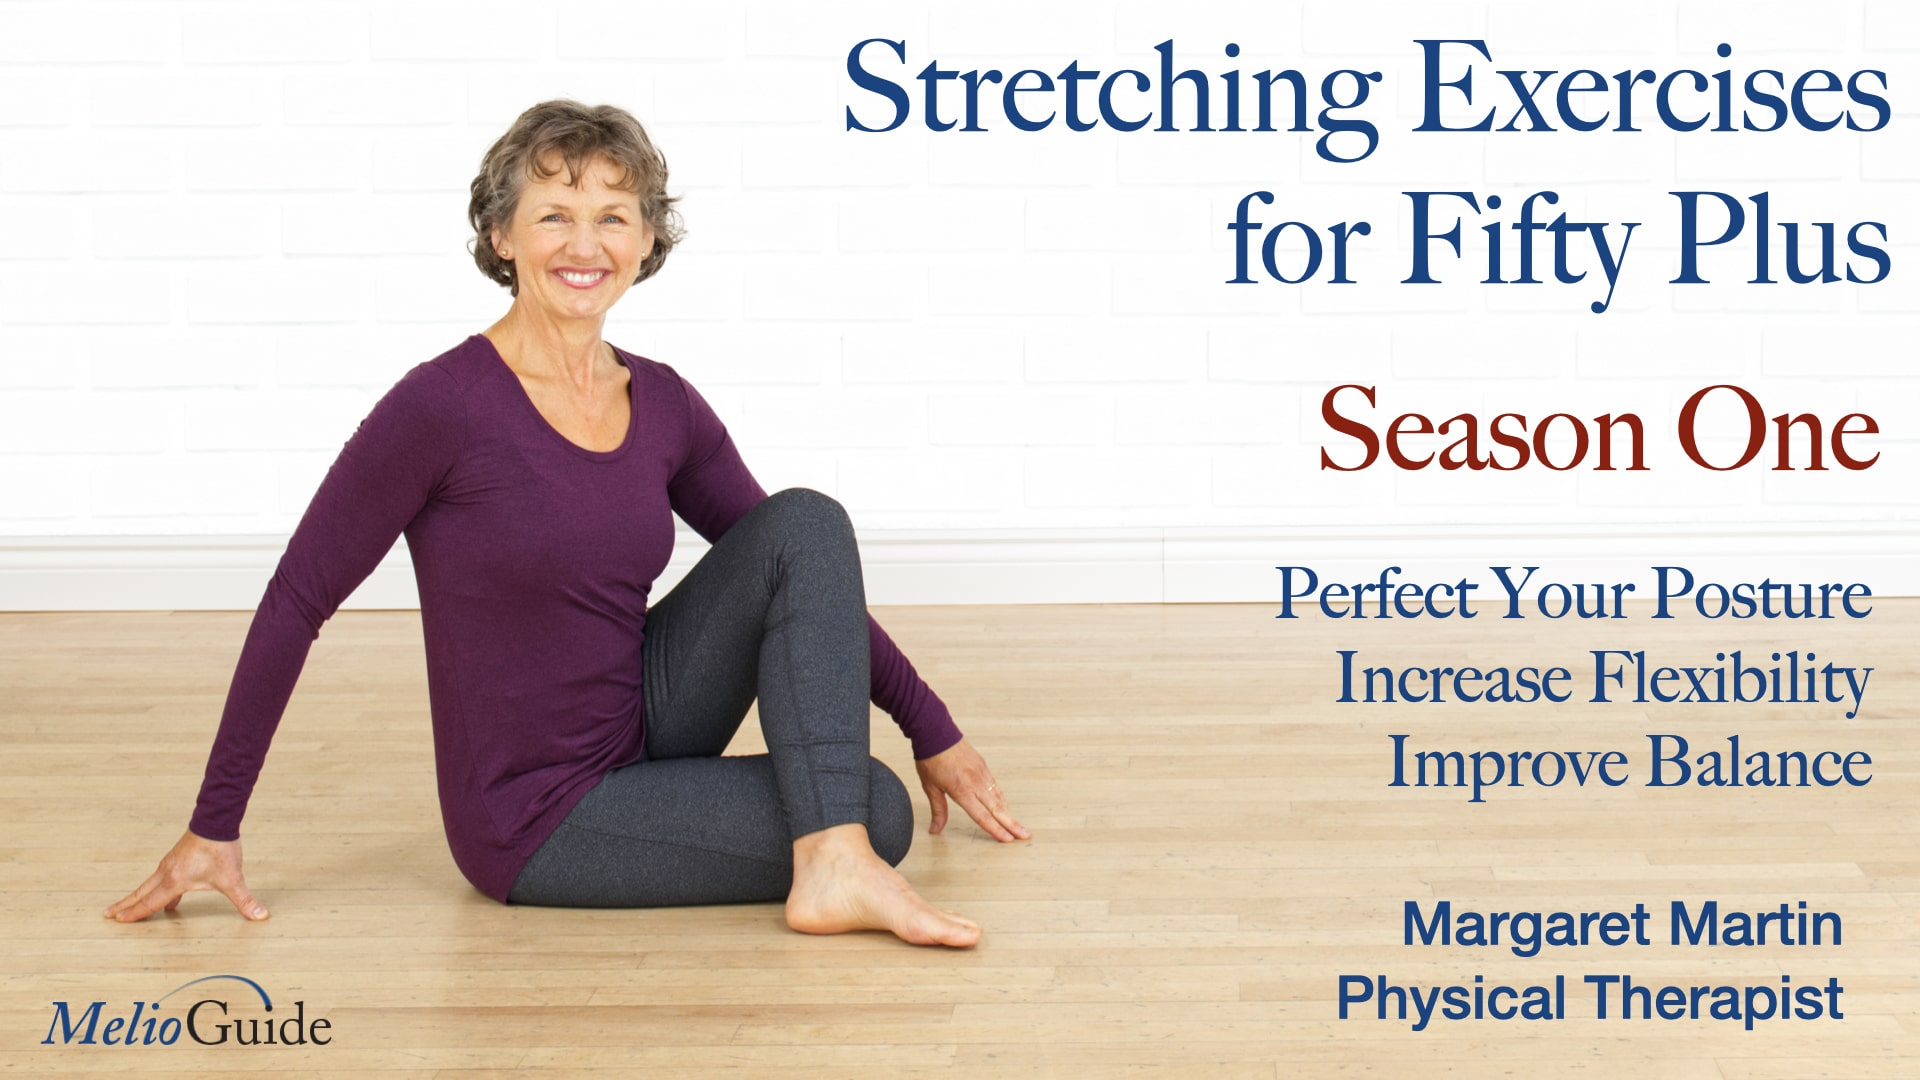 Stretching Exercises for Fifty Plus